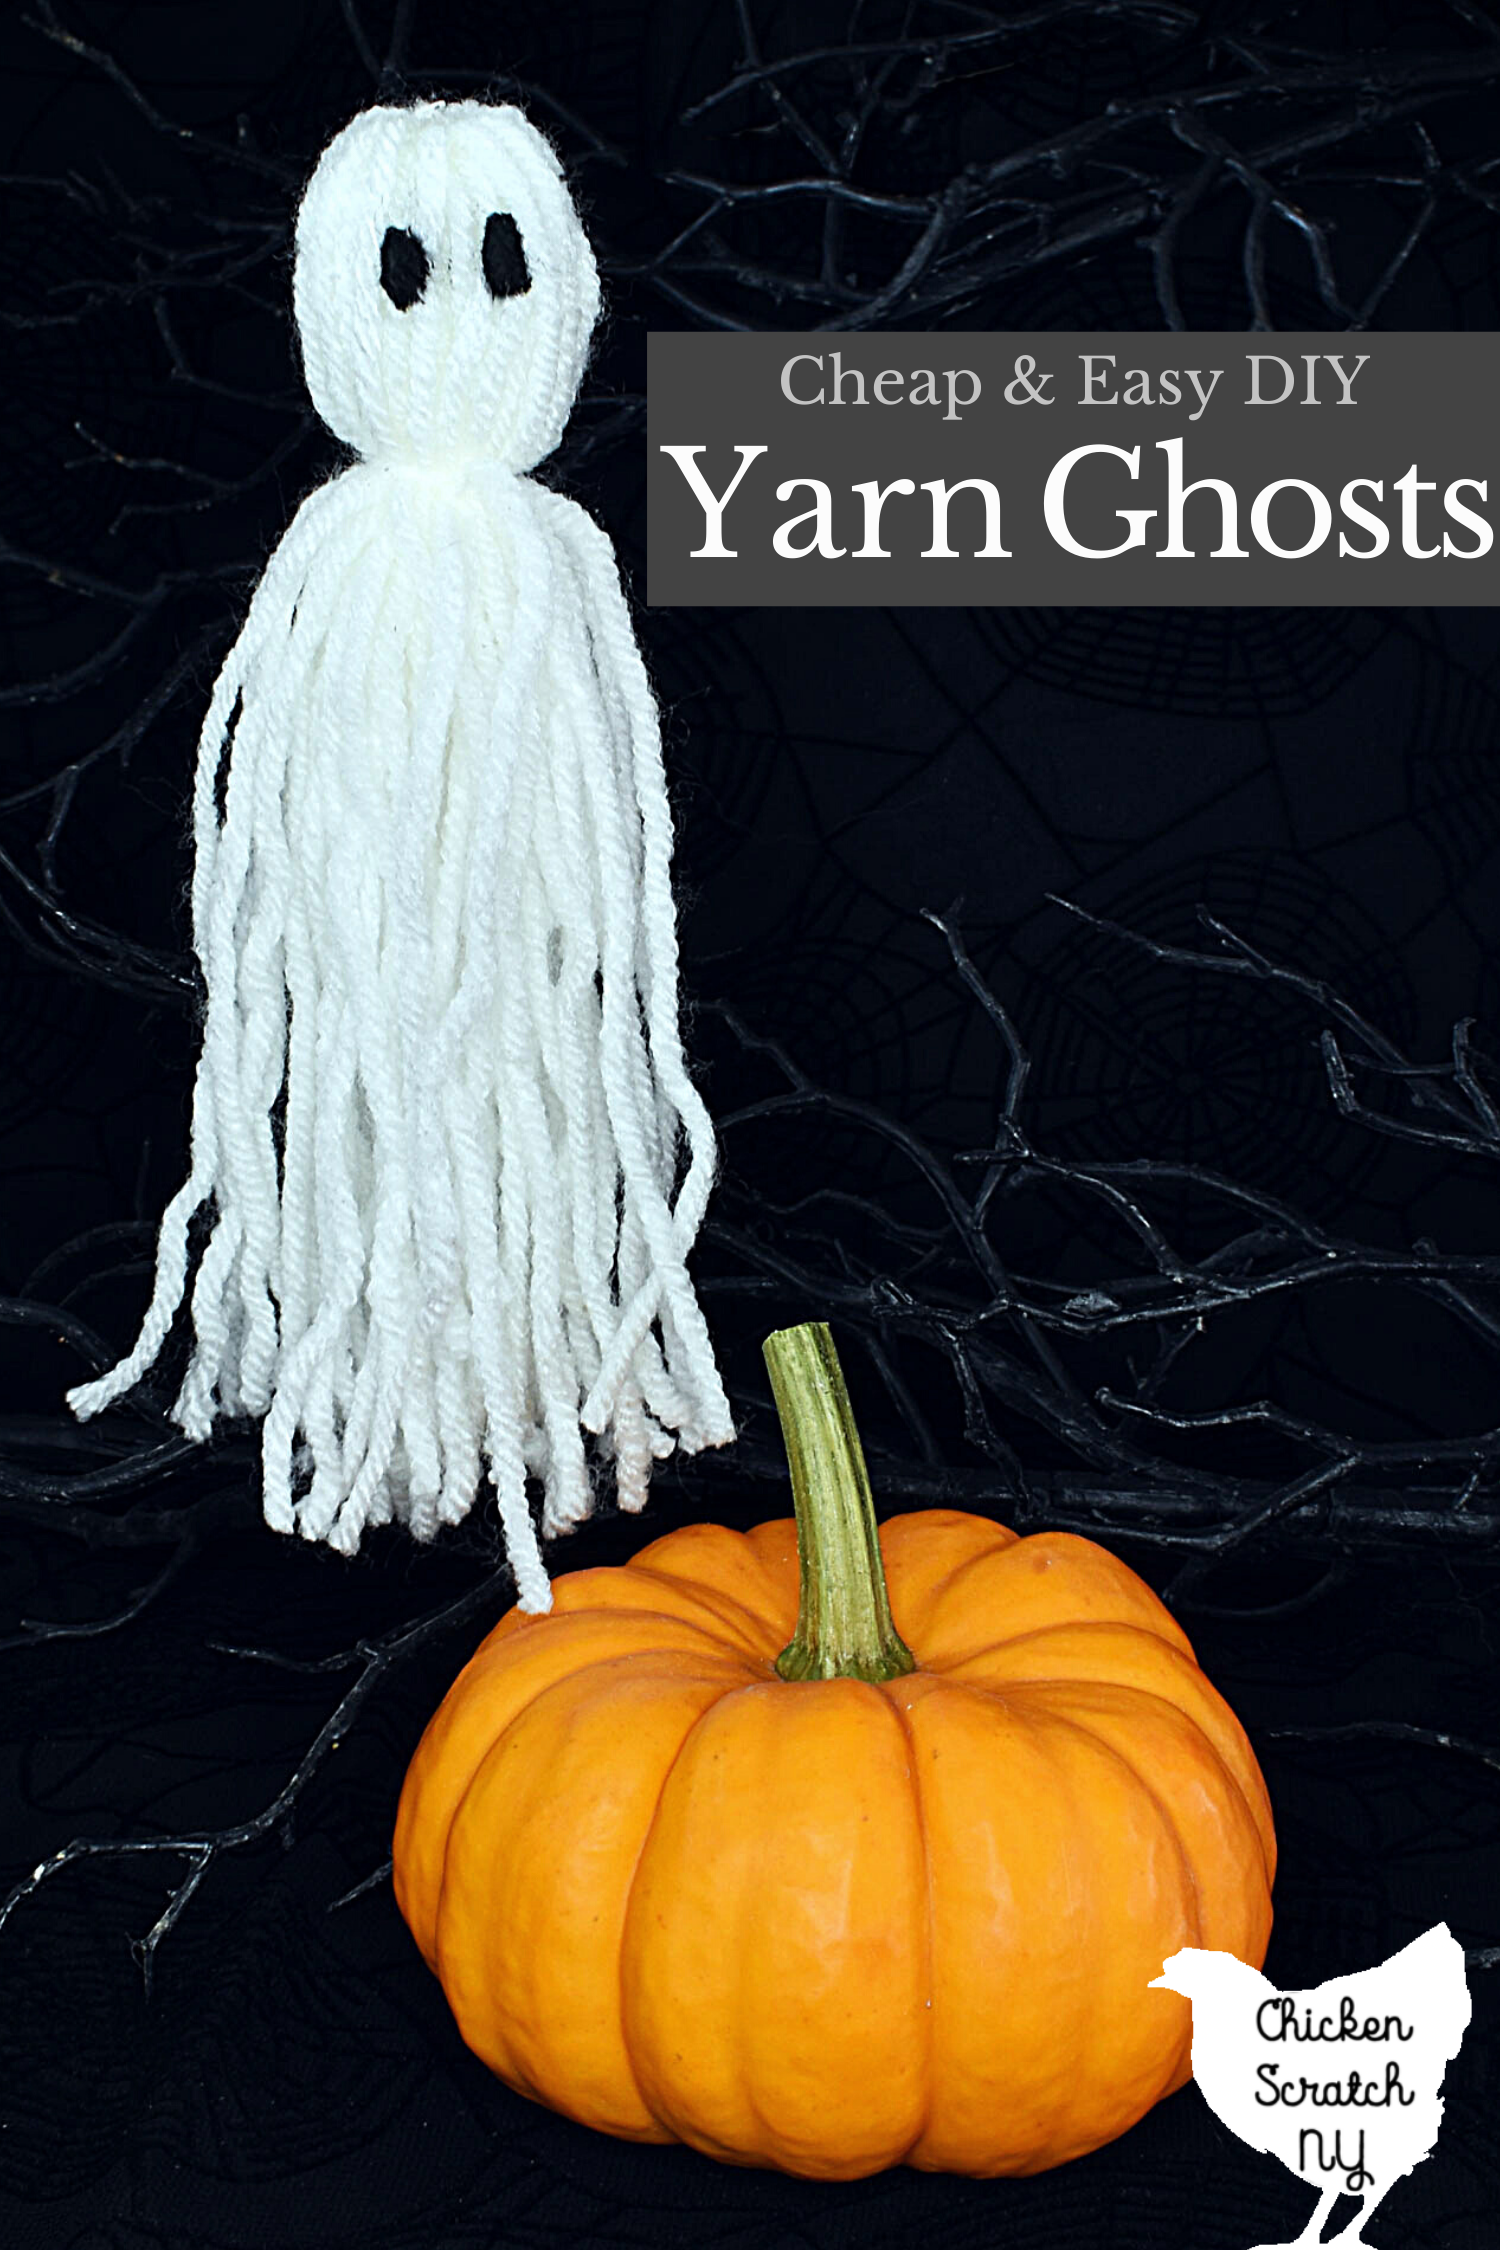 single white yarn ghost hanging from fishing line with a small orange pumpkin